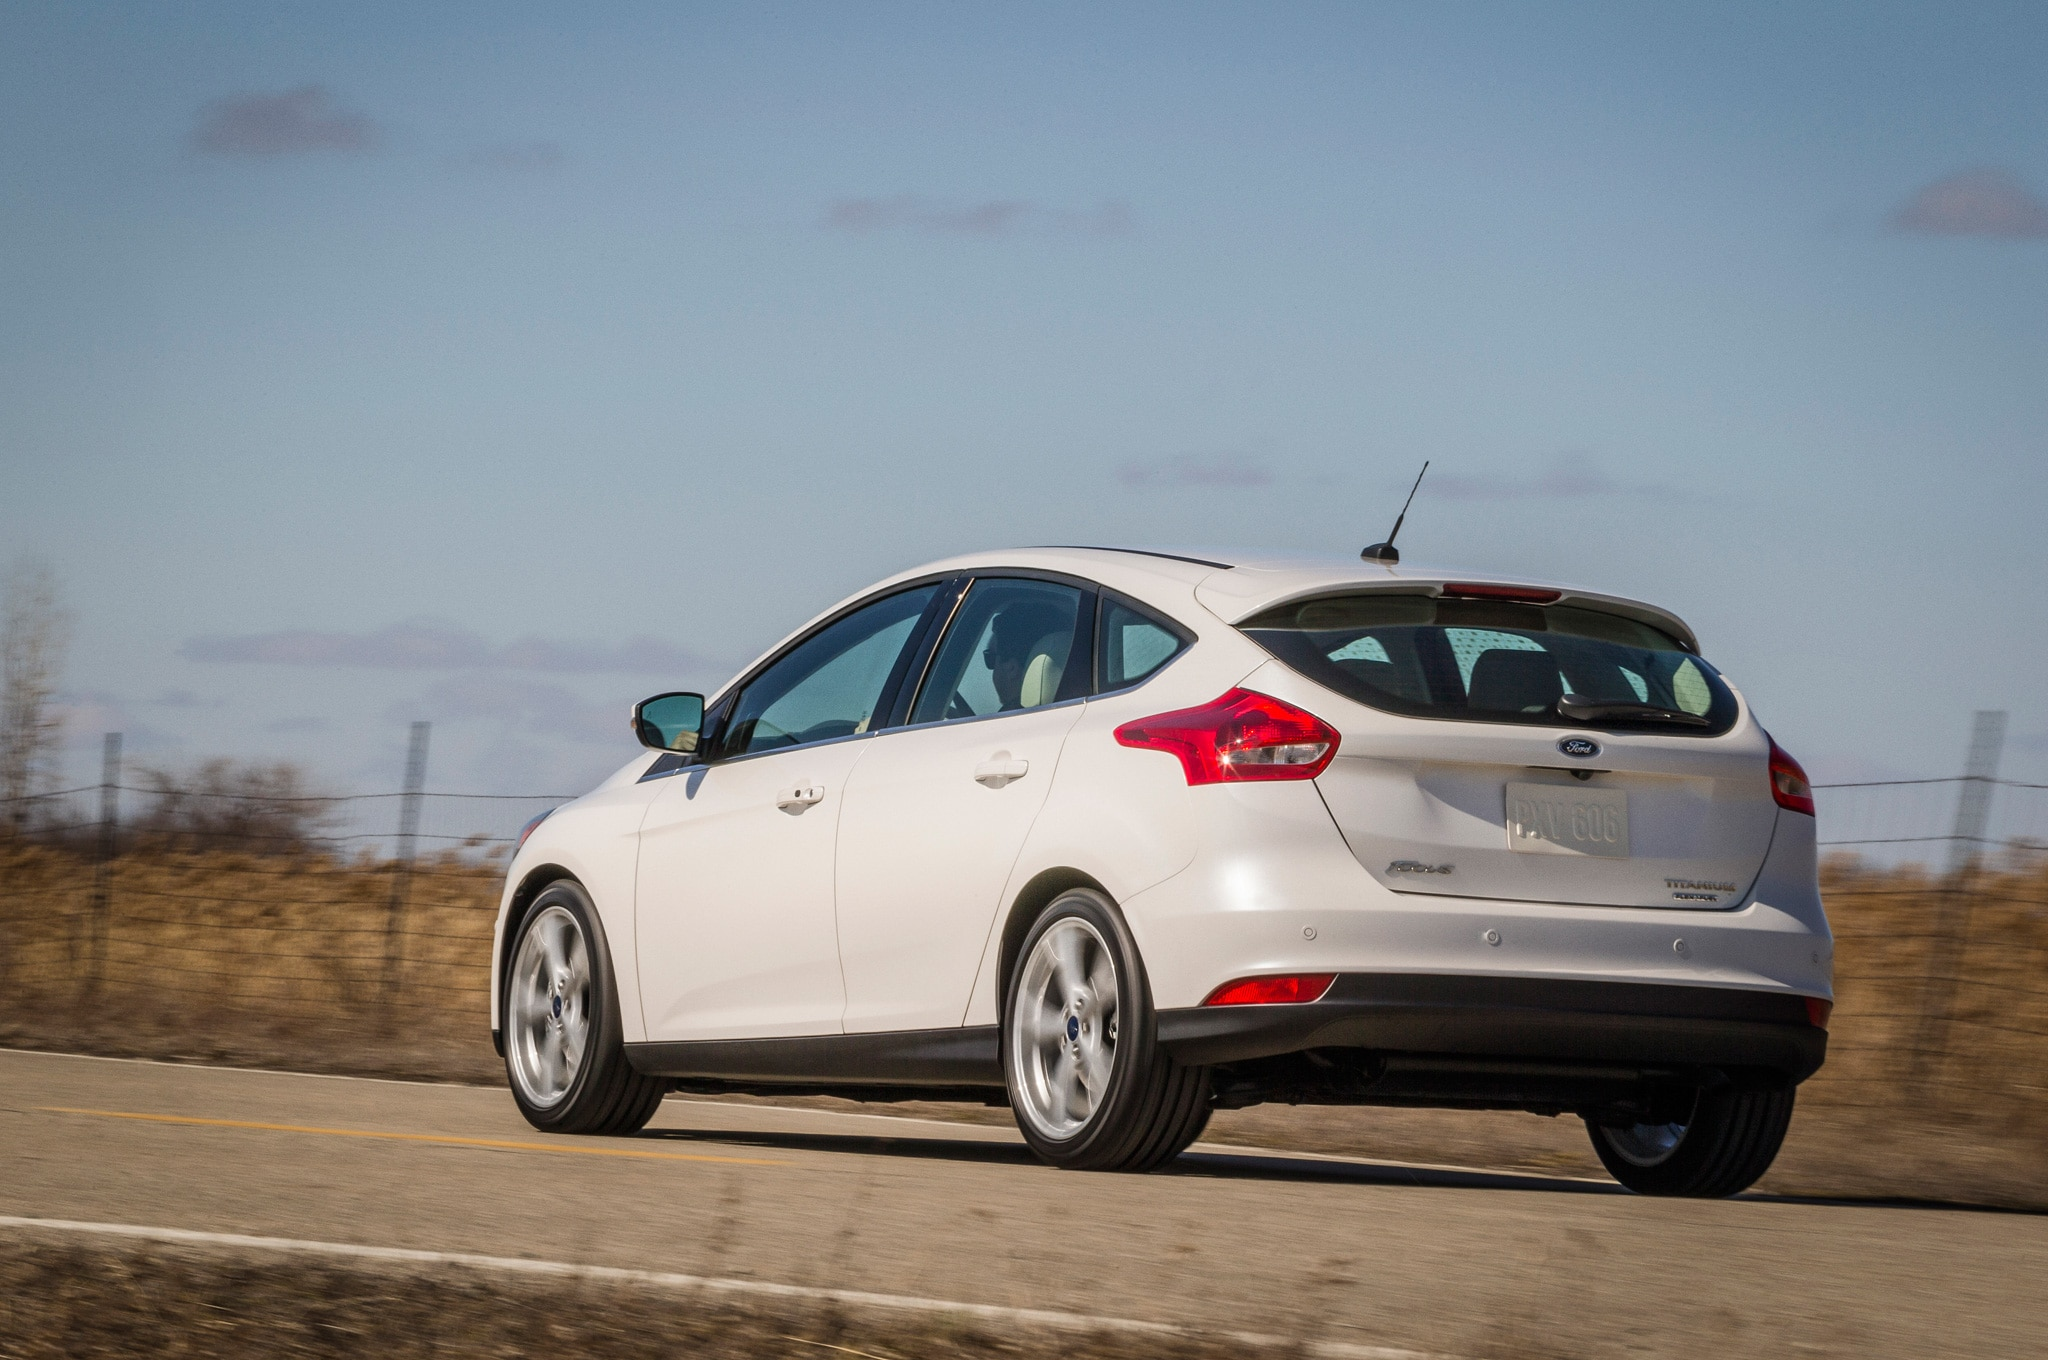 2015 ford focus hatchback rear side motion view